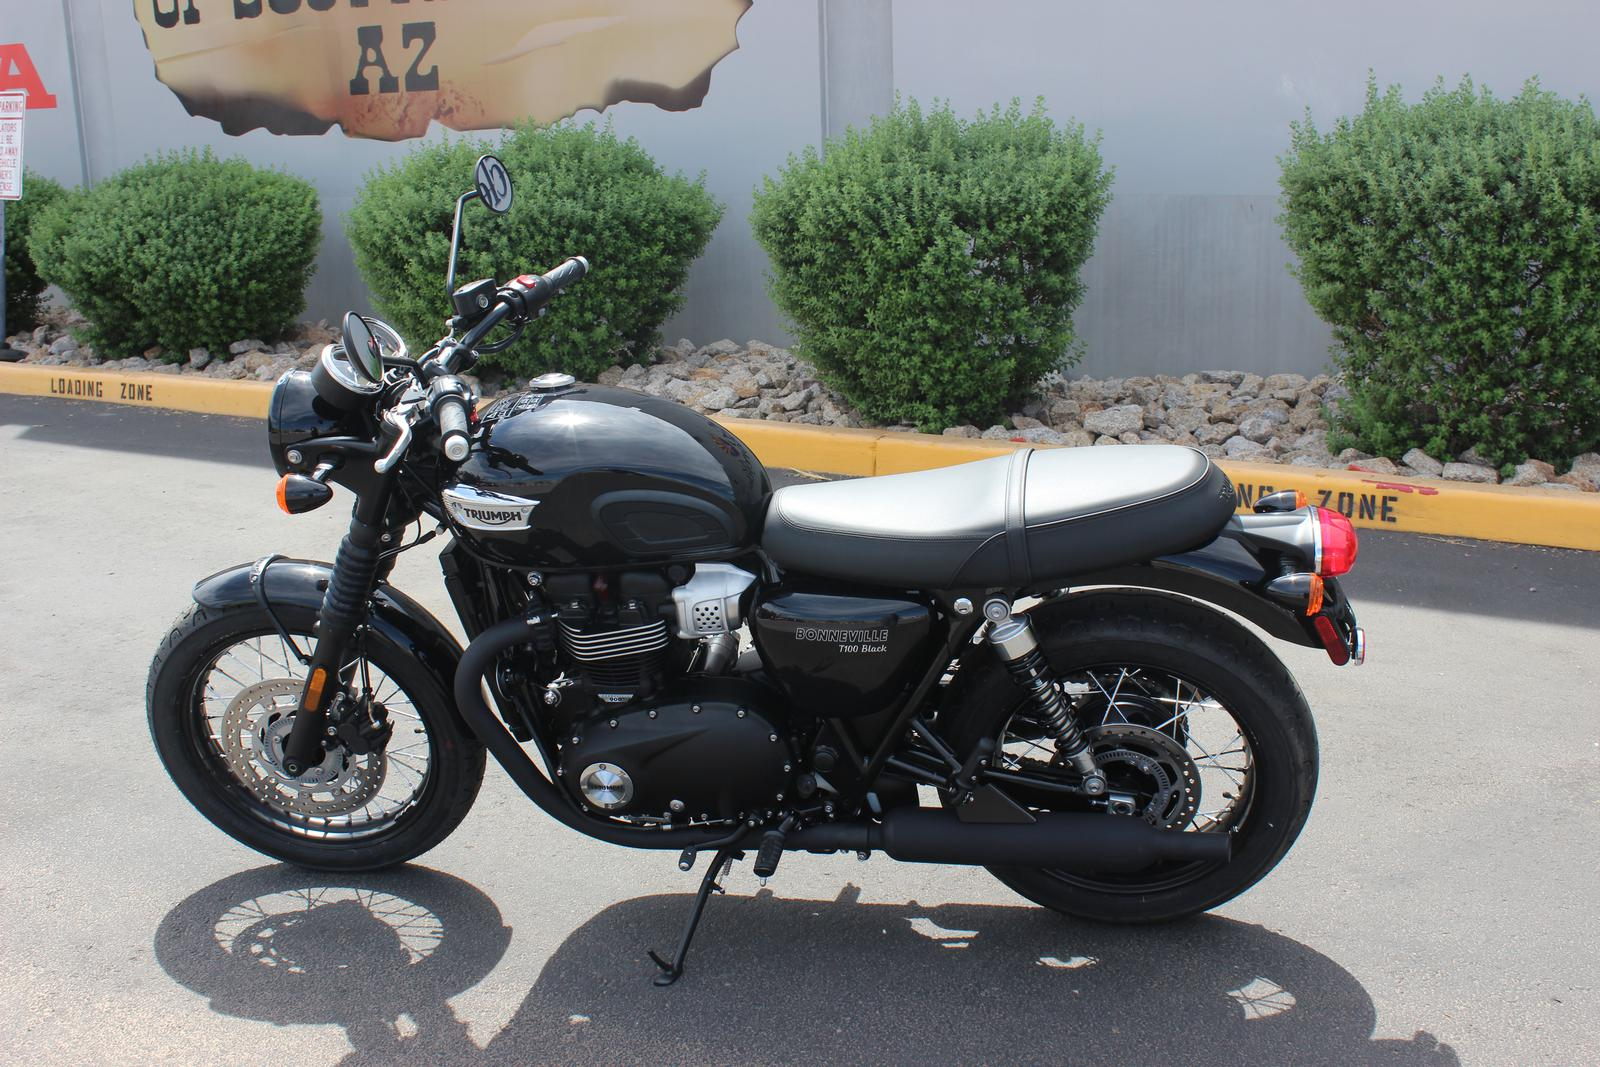 2018 Triumph Bonneville T100 Black For Sale In Scottsdale Az Go Az